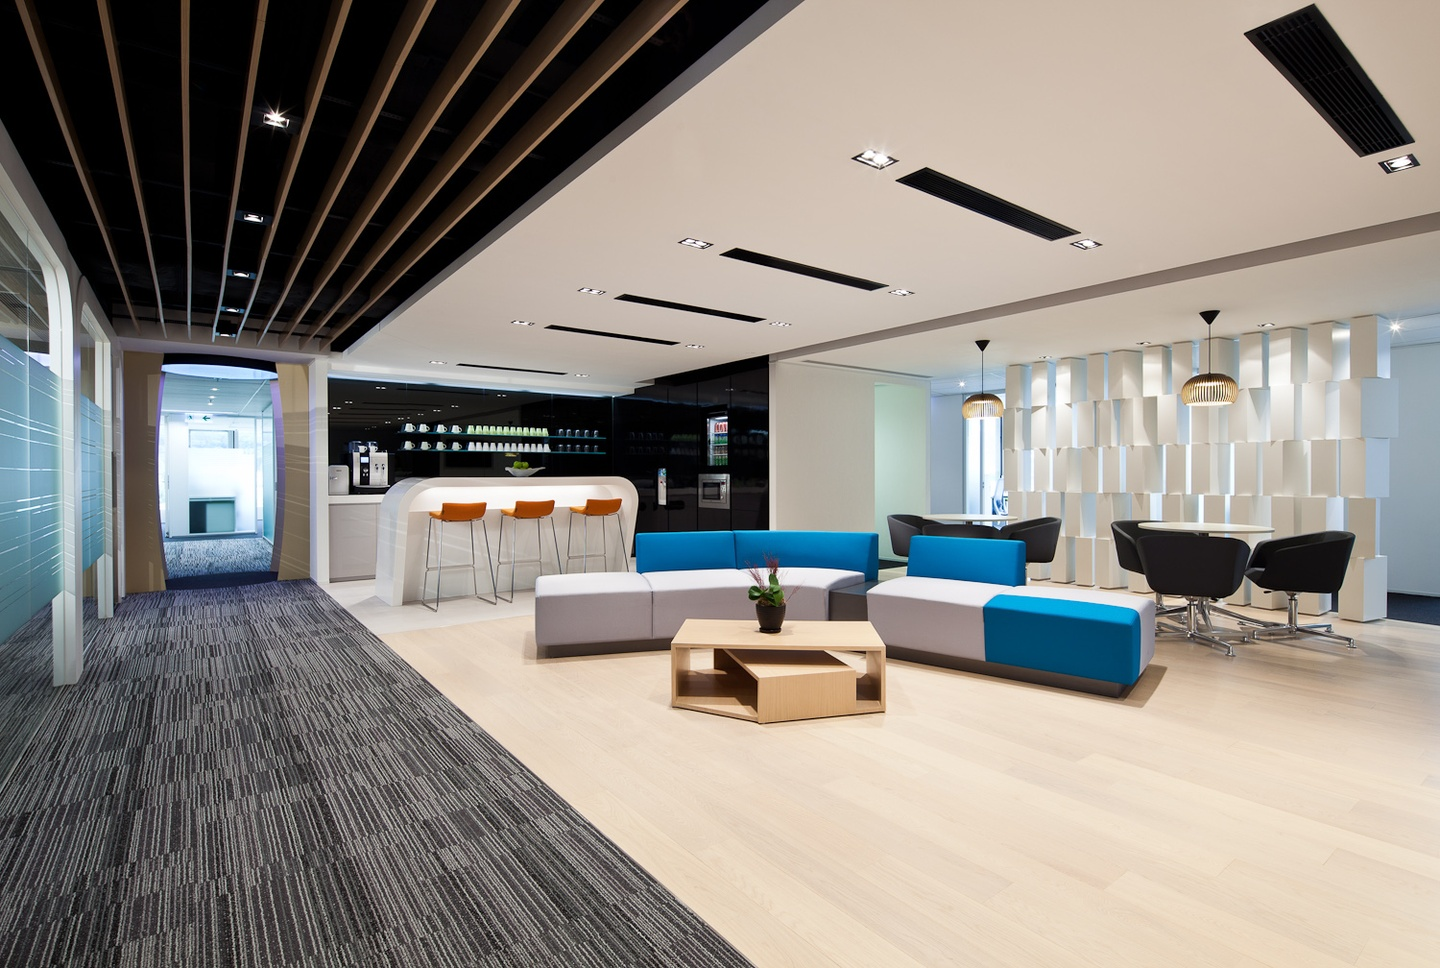 Hong Kong training rooms Salle de réunion Sky Business Centre Silvercord - Meeting Room image 12